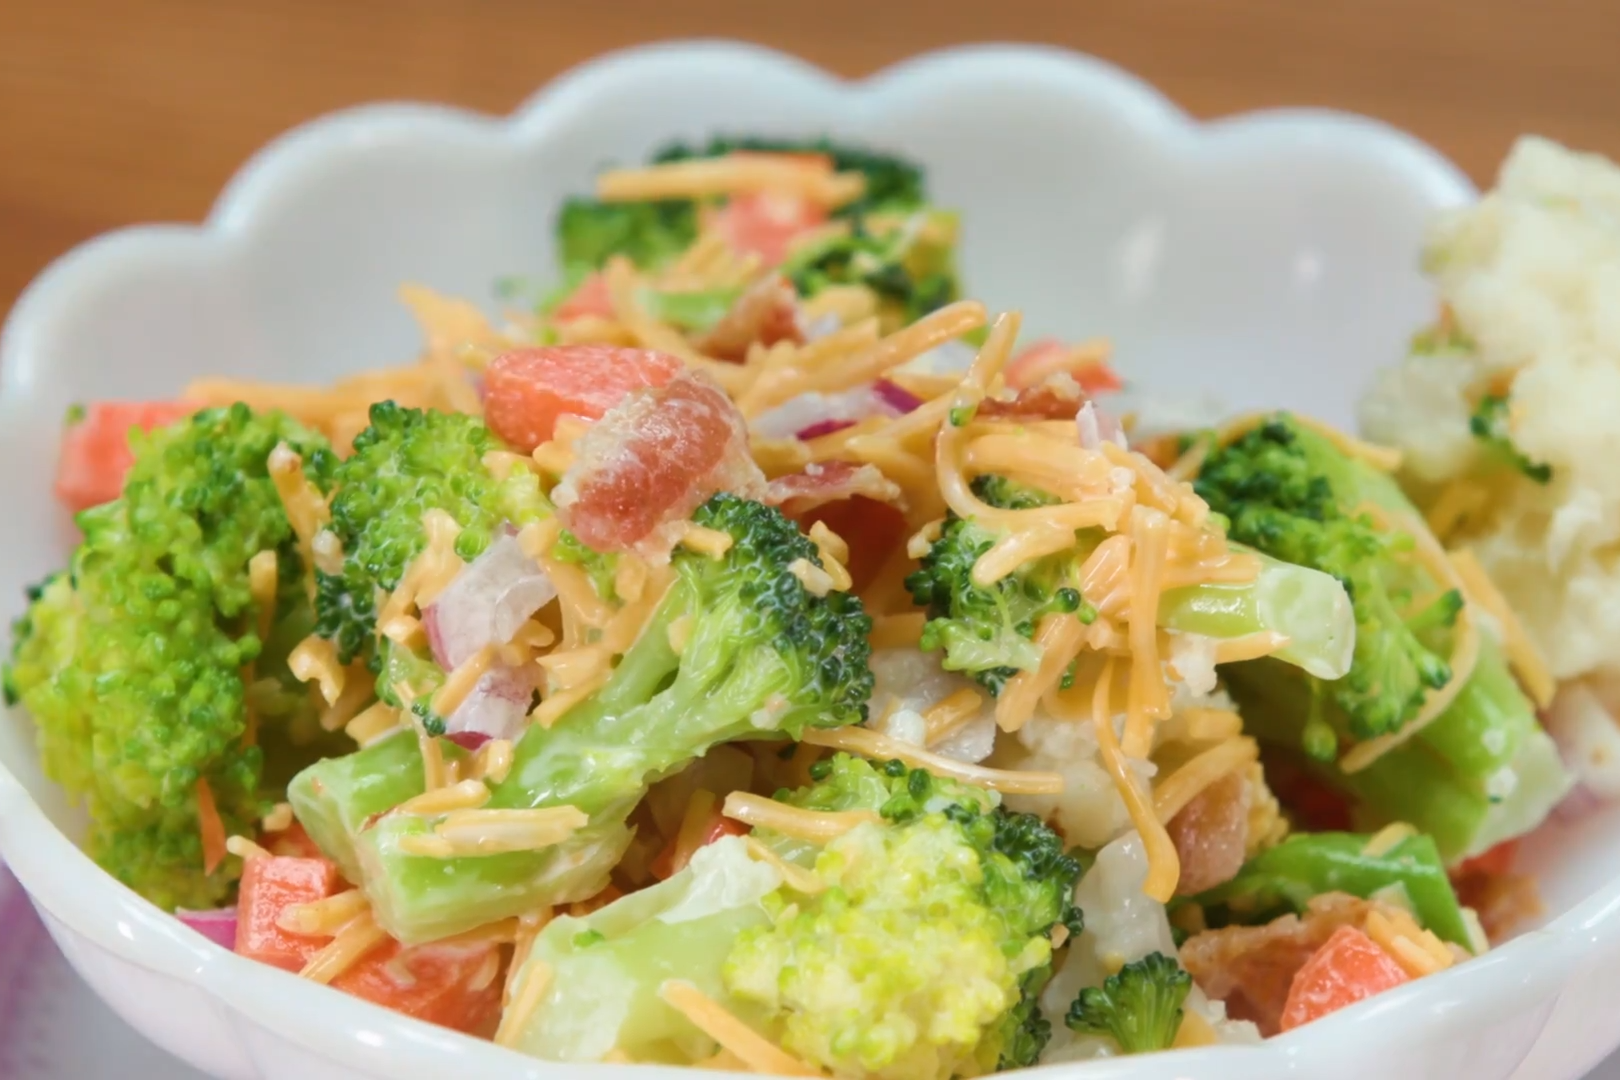 Chubba Bubba's Broccoli Salad Recipe